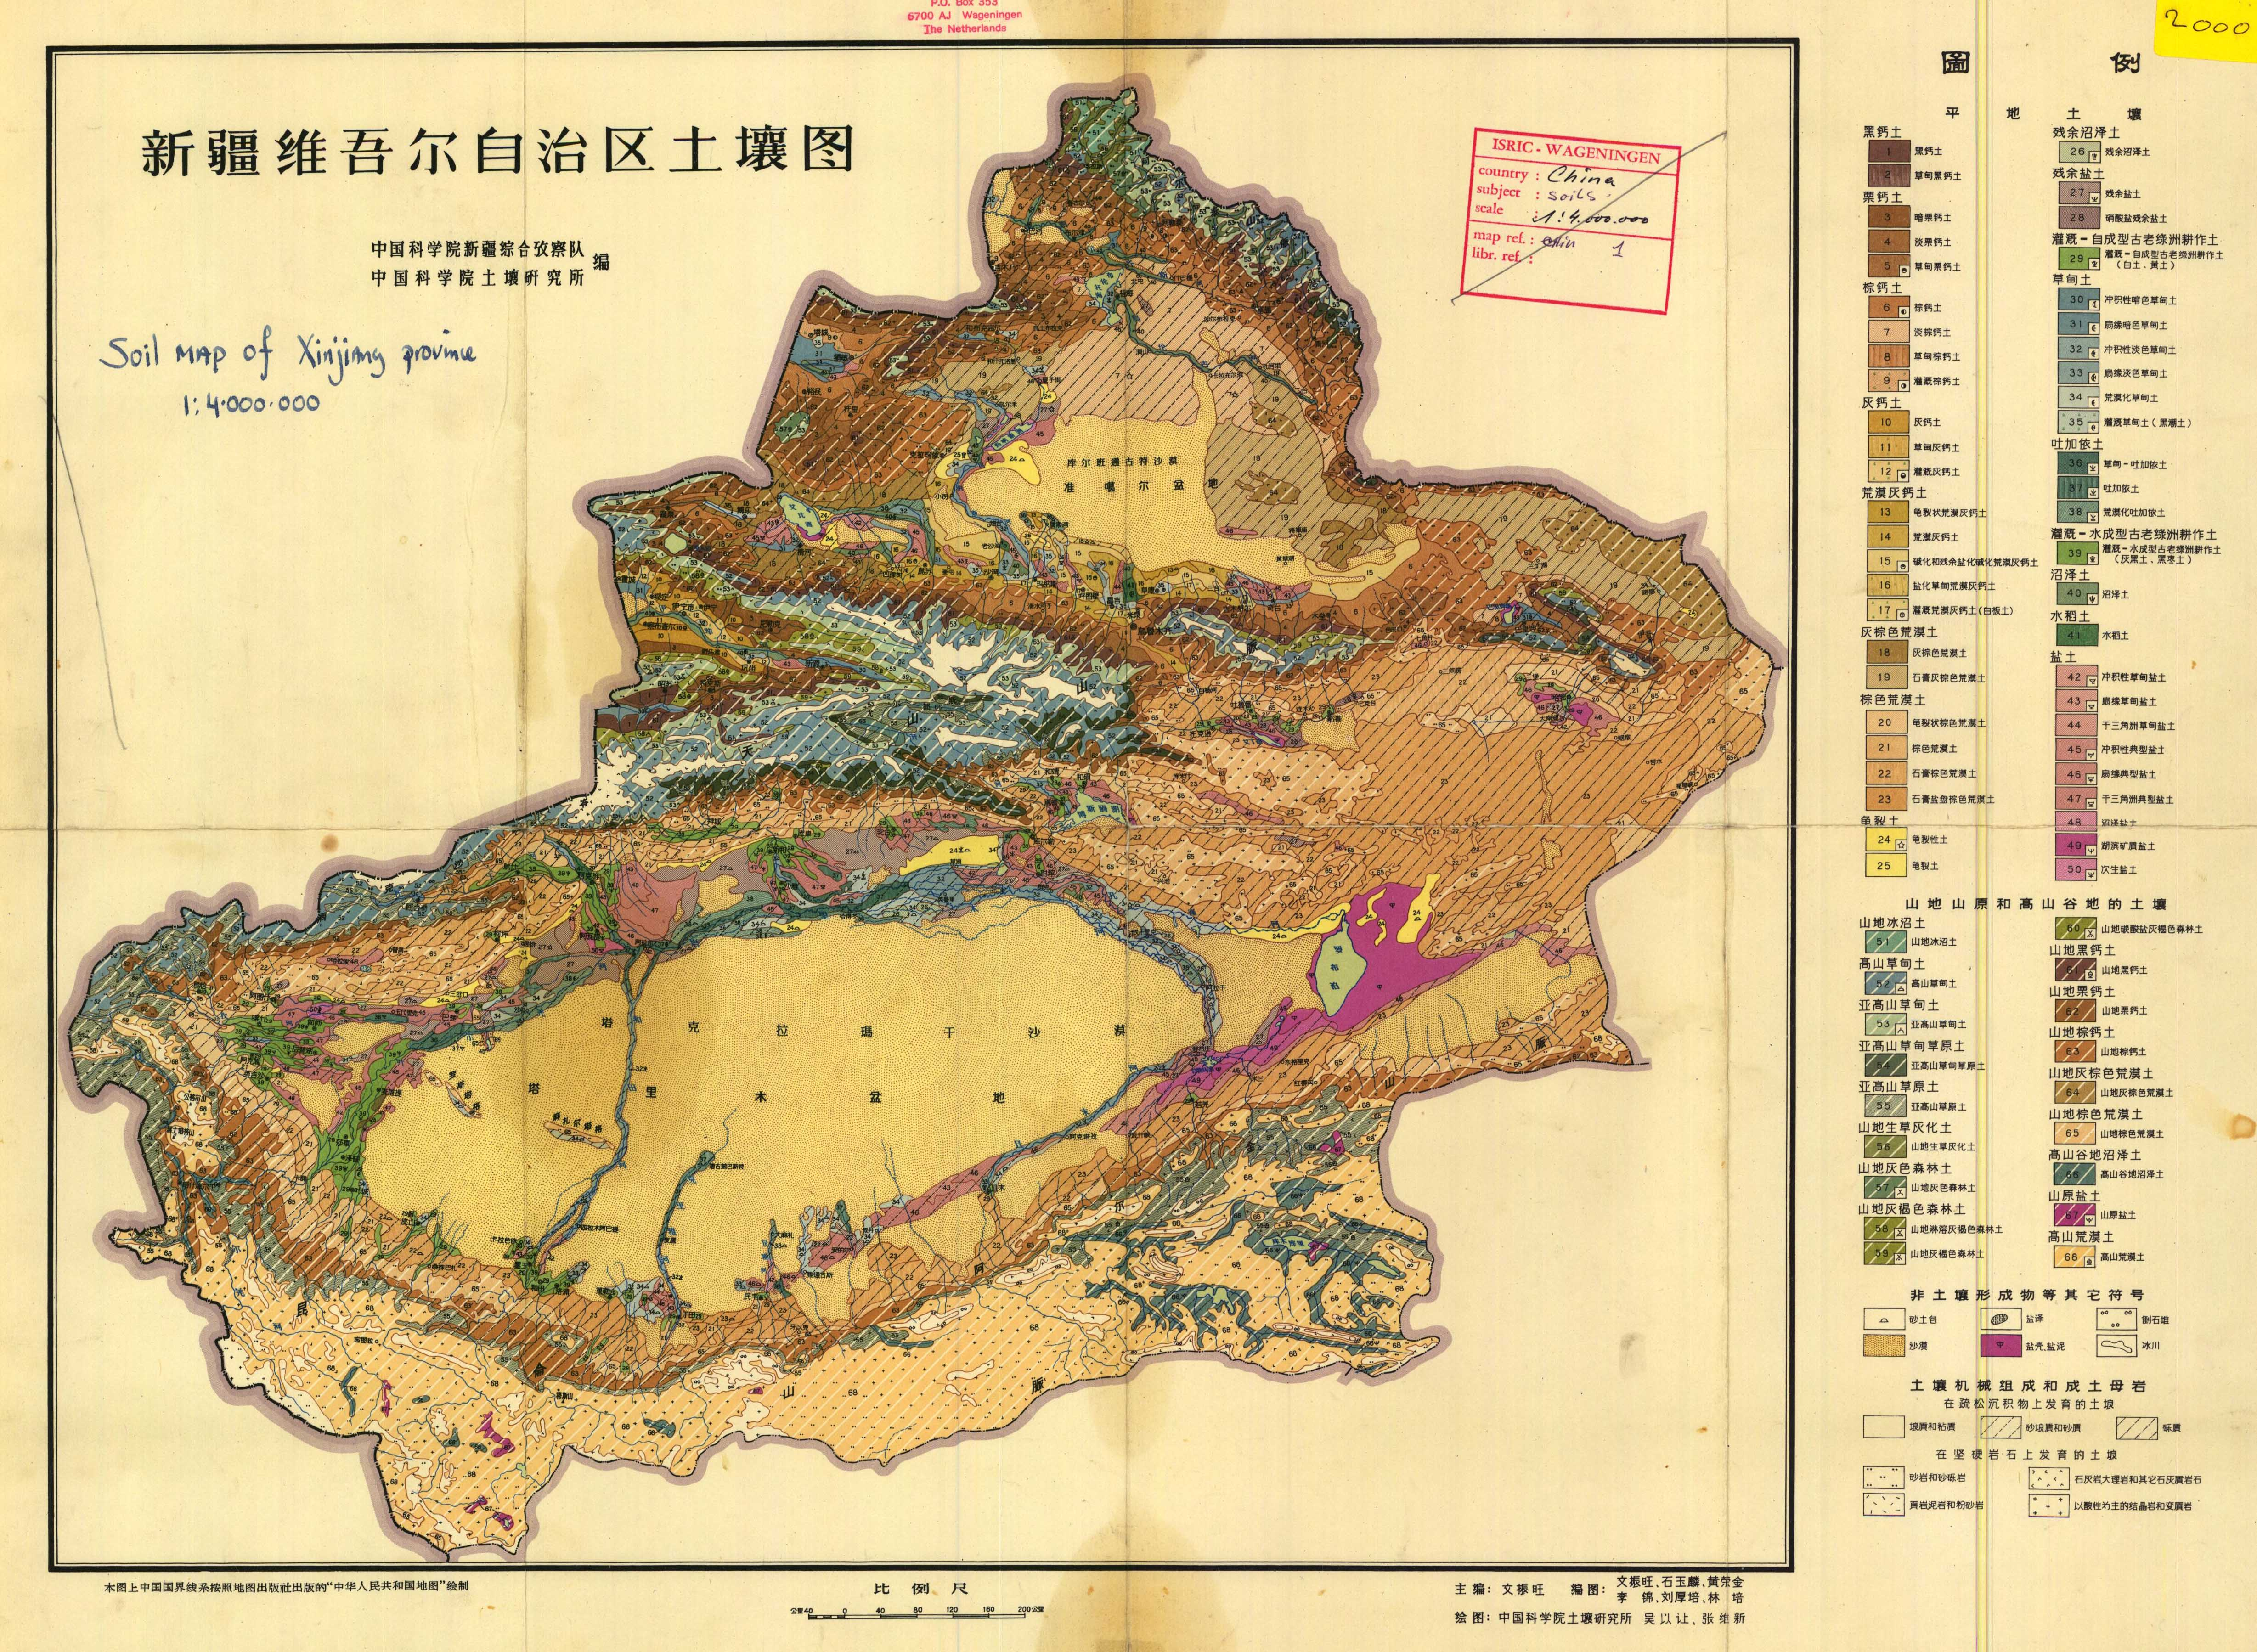 Map Xinjiang.Soil Map Of Xinjiang Province Esdac European Commission